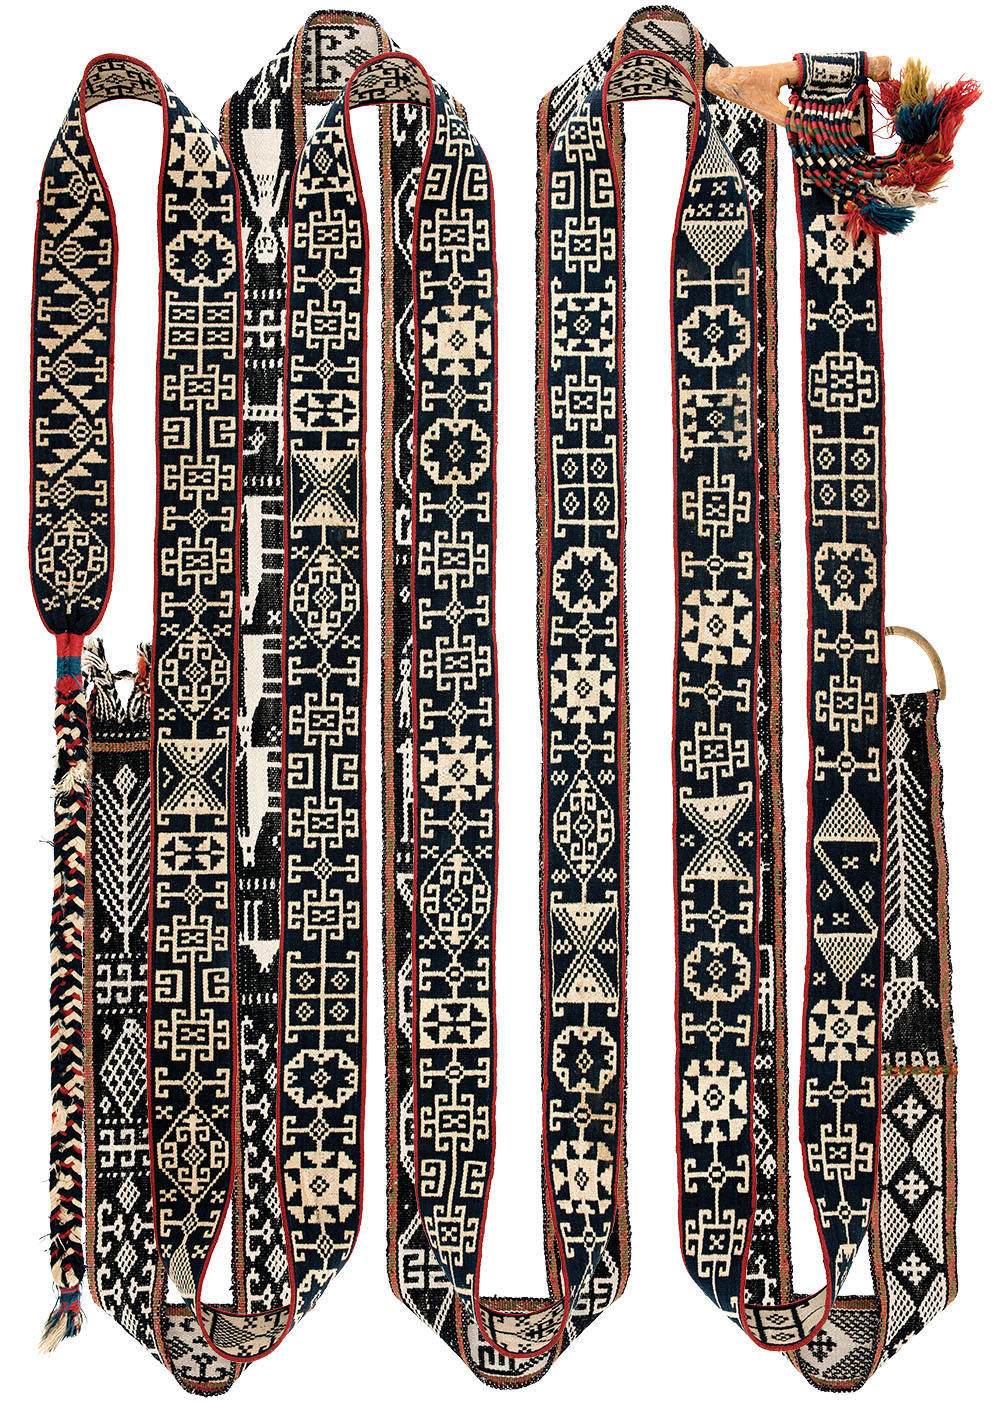 Shahsevan pack-animal band, Iran. Fred Mushkat collection. Published in Weavings of Nomads in Iran, no.86